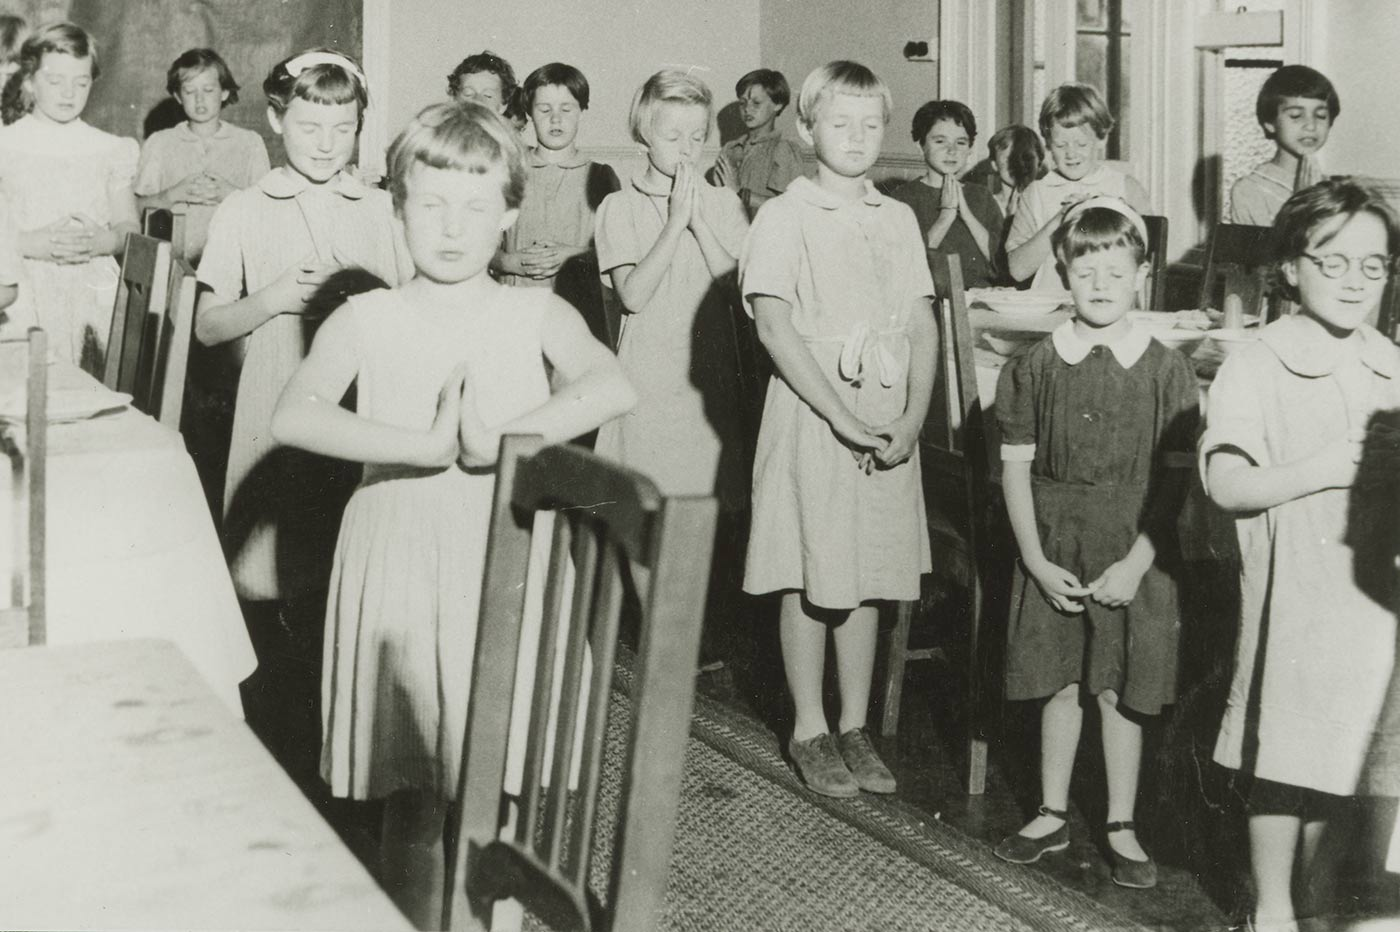 Black and white image showing a group of girls in a dining room, standing with hands together and eyes closed. - click to view larger image